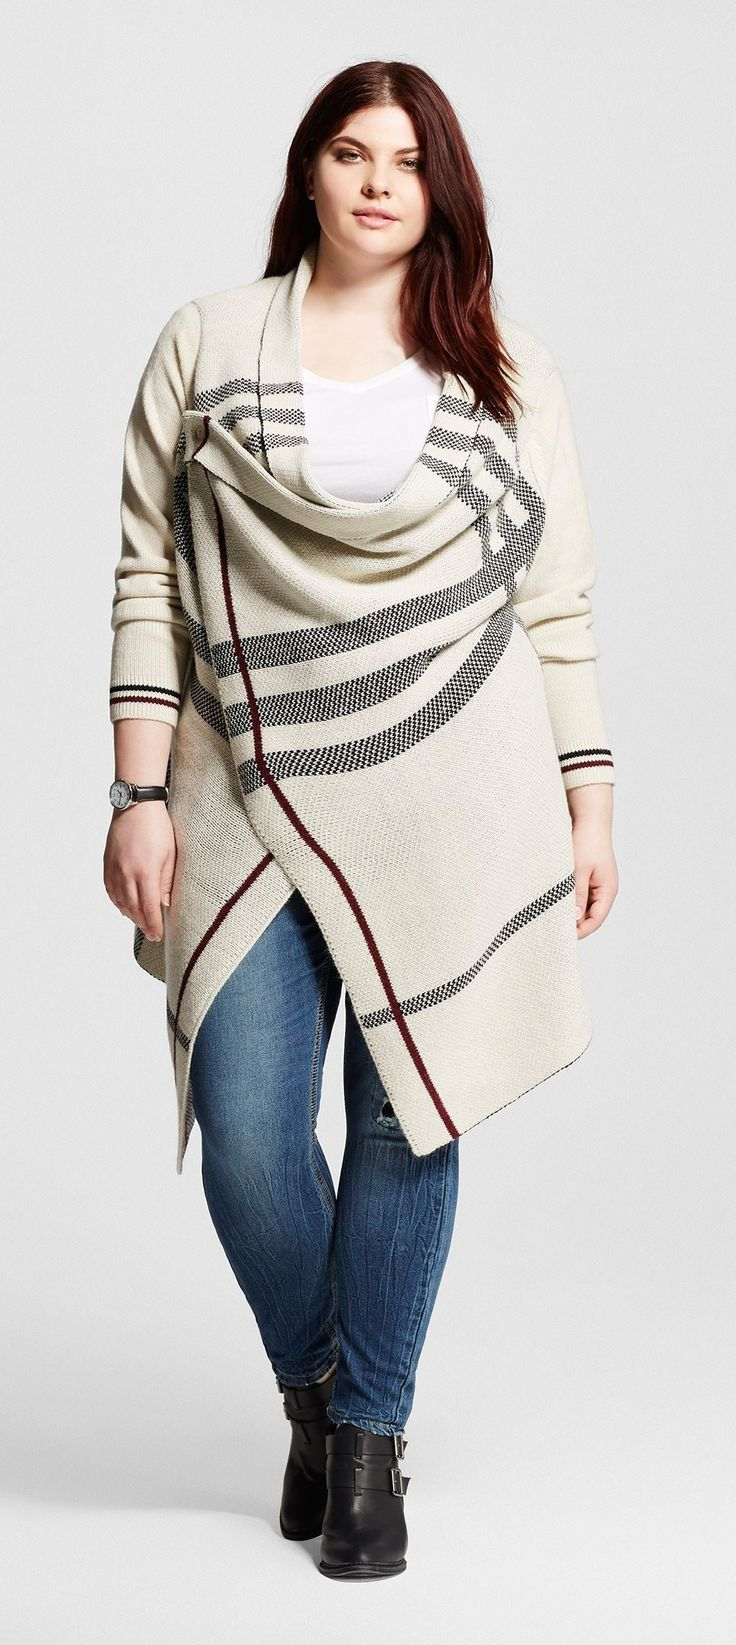 717 best Plus Size Cute Clothes images on Pinterest | Clothing ...